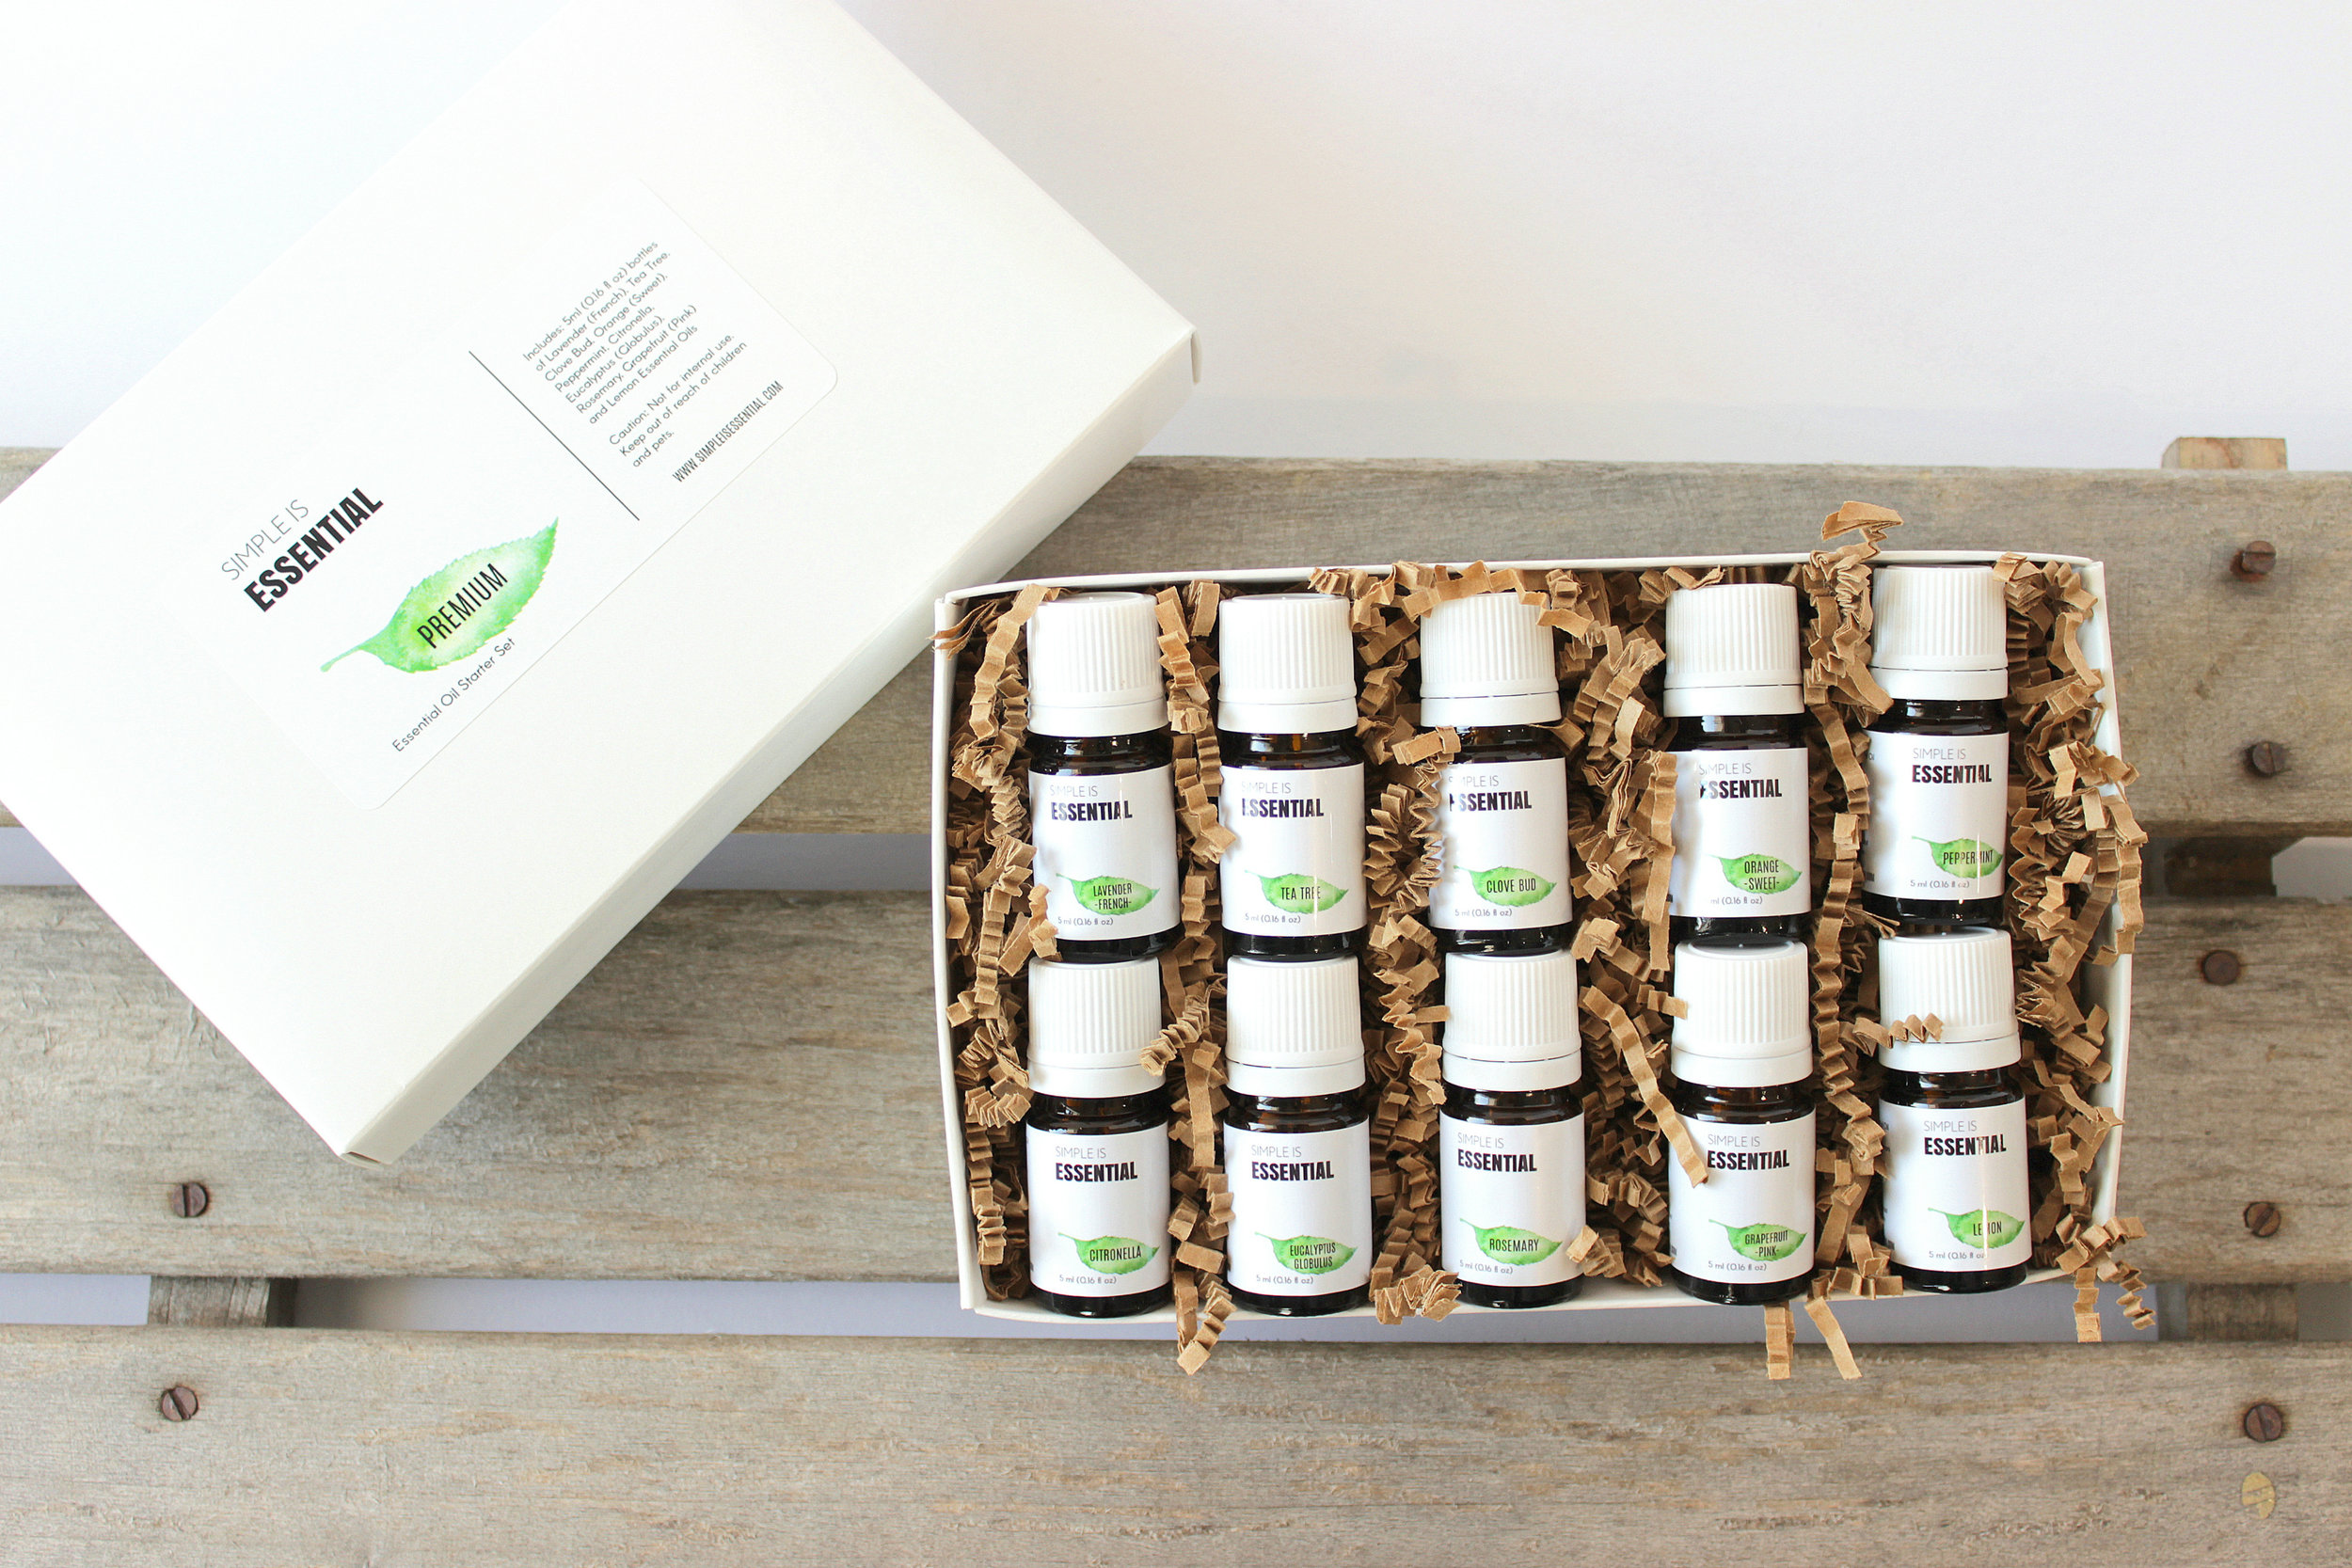 Essential Oil Sets   Sets of essential oils that I have curated to make your essential oil purchase easy and complete. Many varieties are available which are perfect gifts for yourself or someone special.